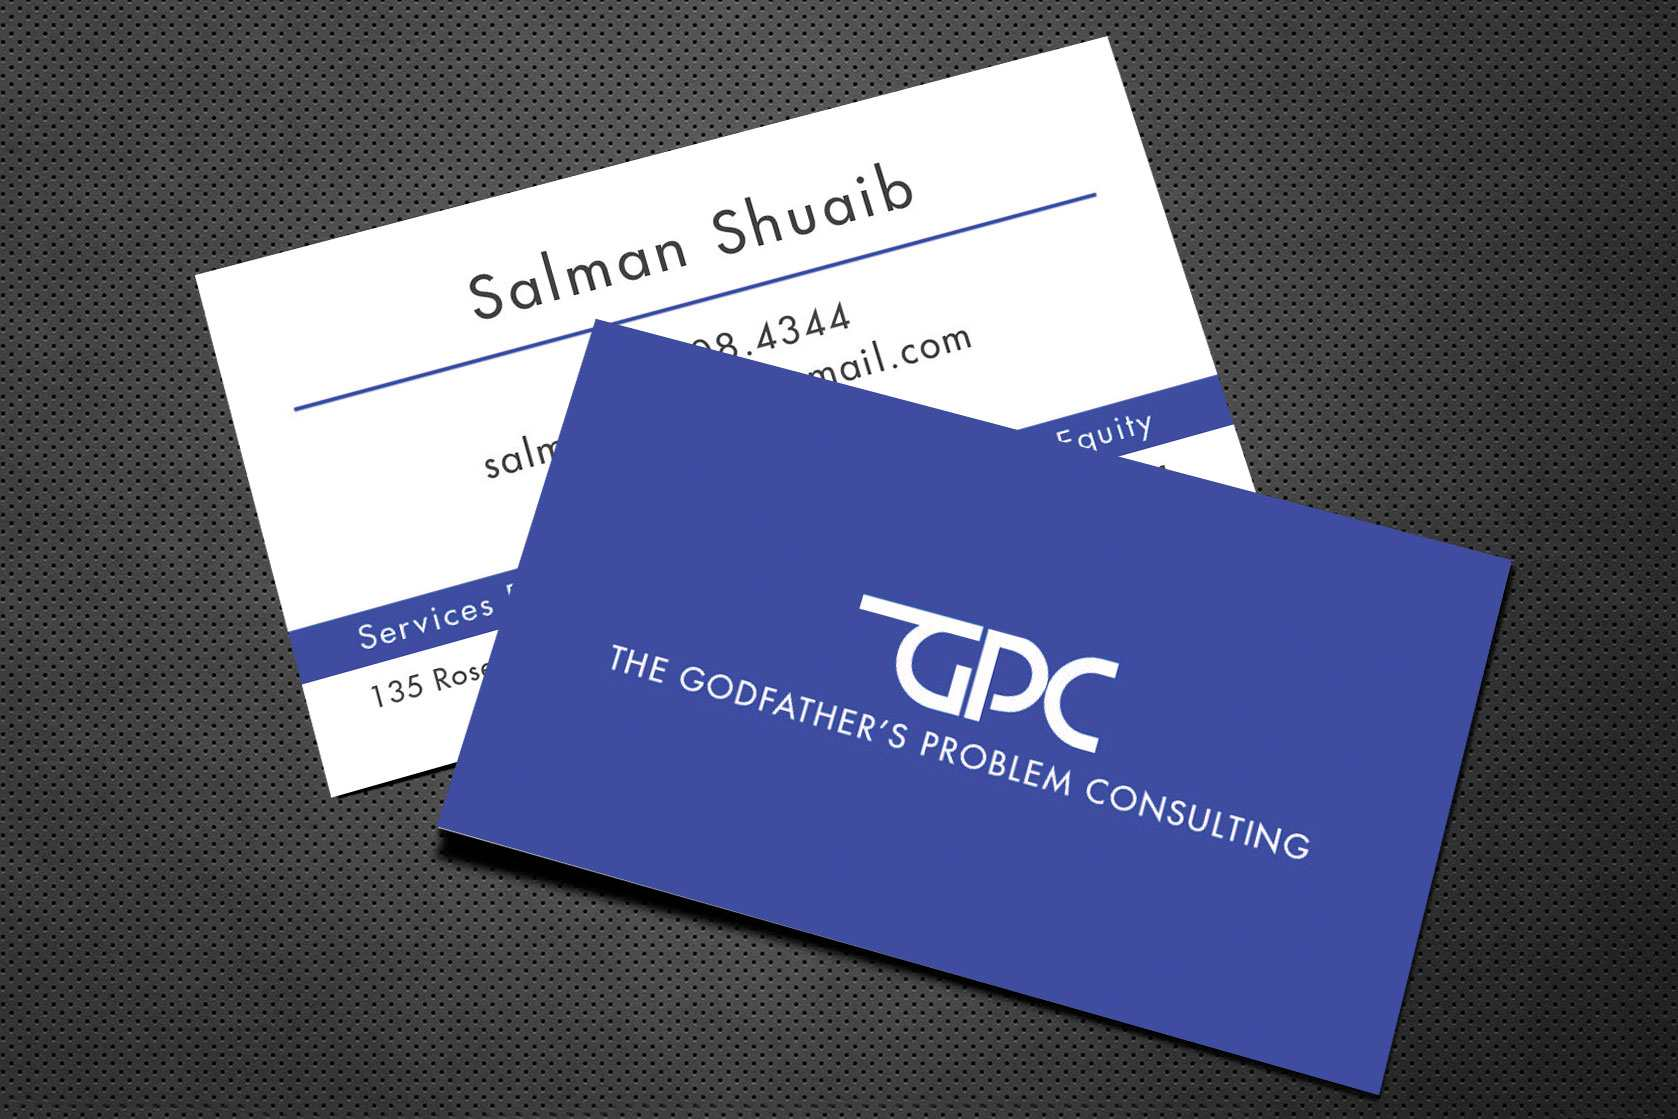 The godfathers problem consulting businesscard design lines beyond magicingreecefo Choice Image